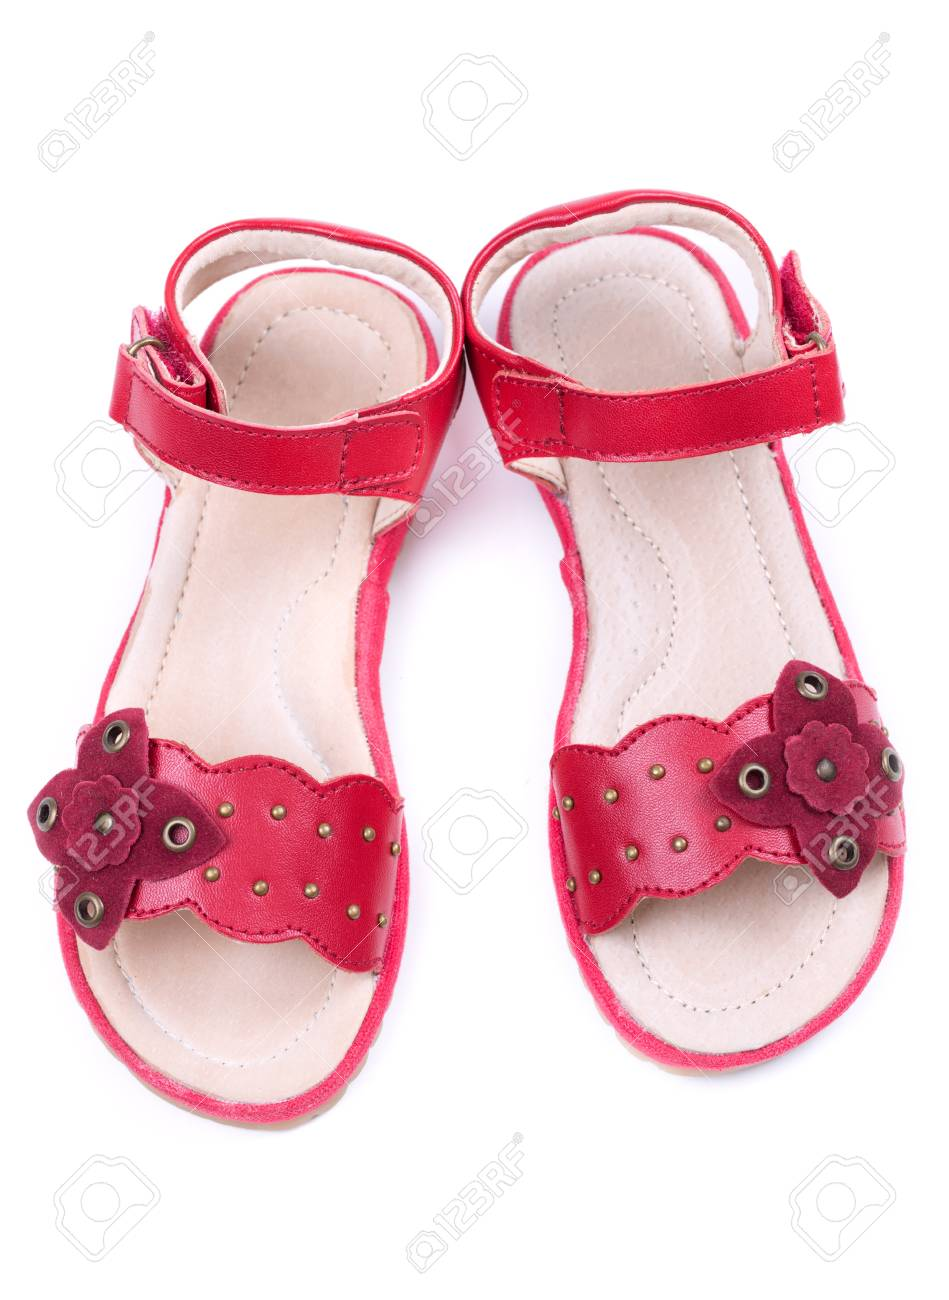 Red Shoes. Isolate On White Stock Photo